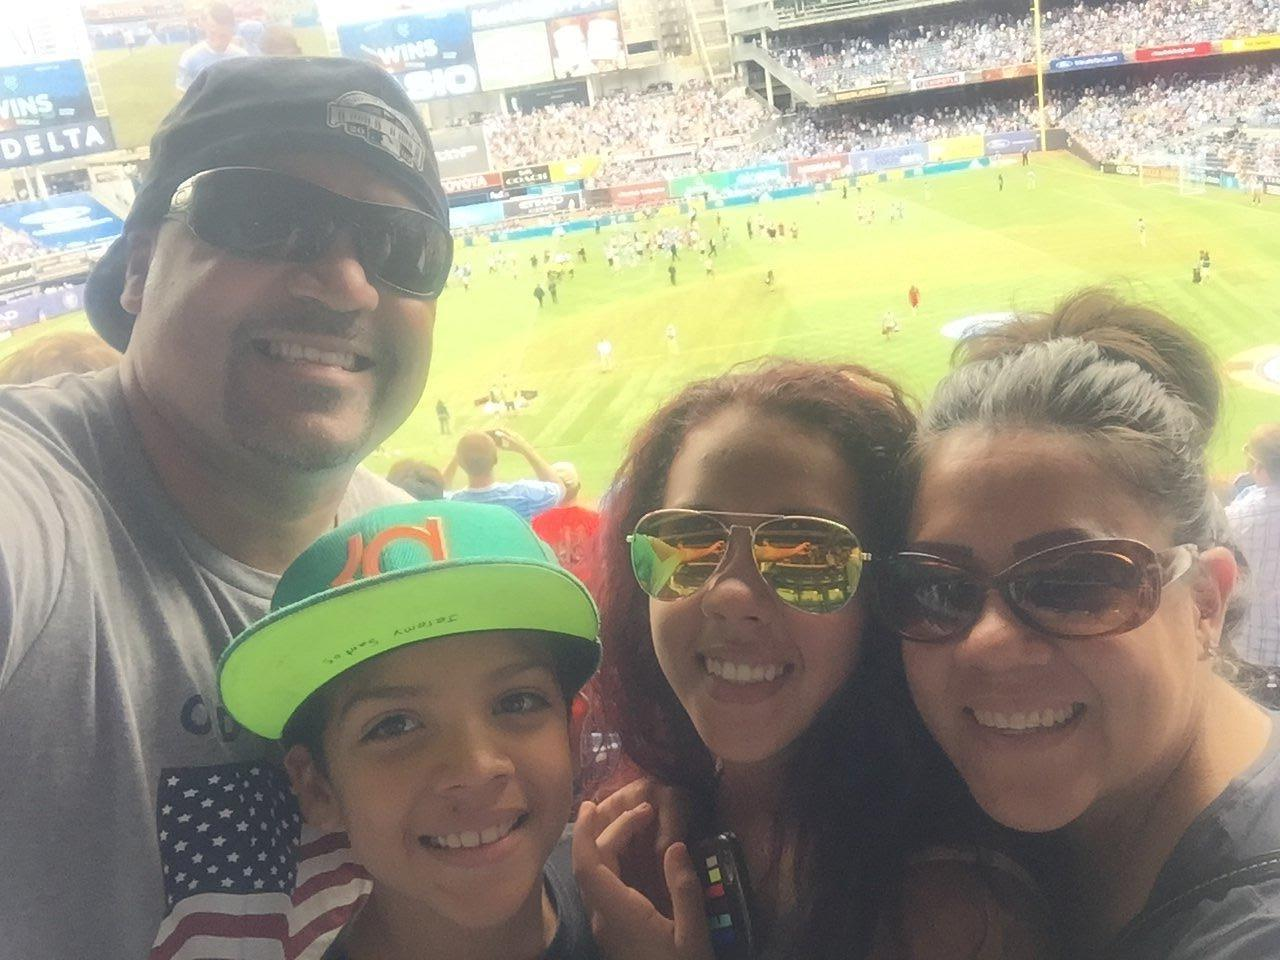 """""""Me and my family wanted to say thank you so much for allowing us to go Yankee Stadium and watch our first ever live futbol game. We enjoyed it so much.If it wasn't for your generosity this wouldn't have happened."""" - US Coast Guard Serviceman"""